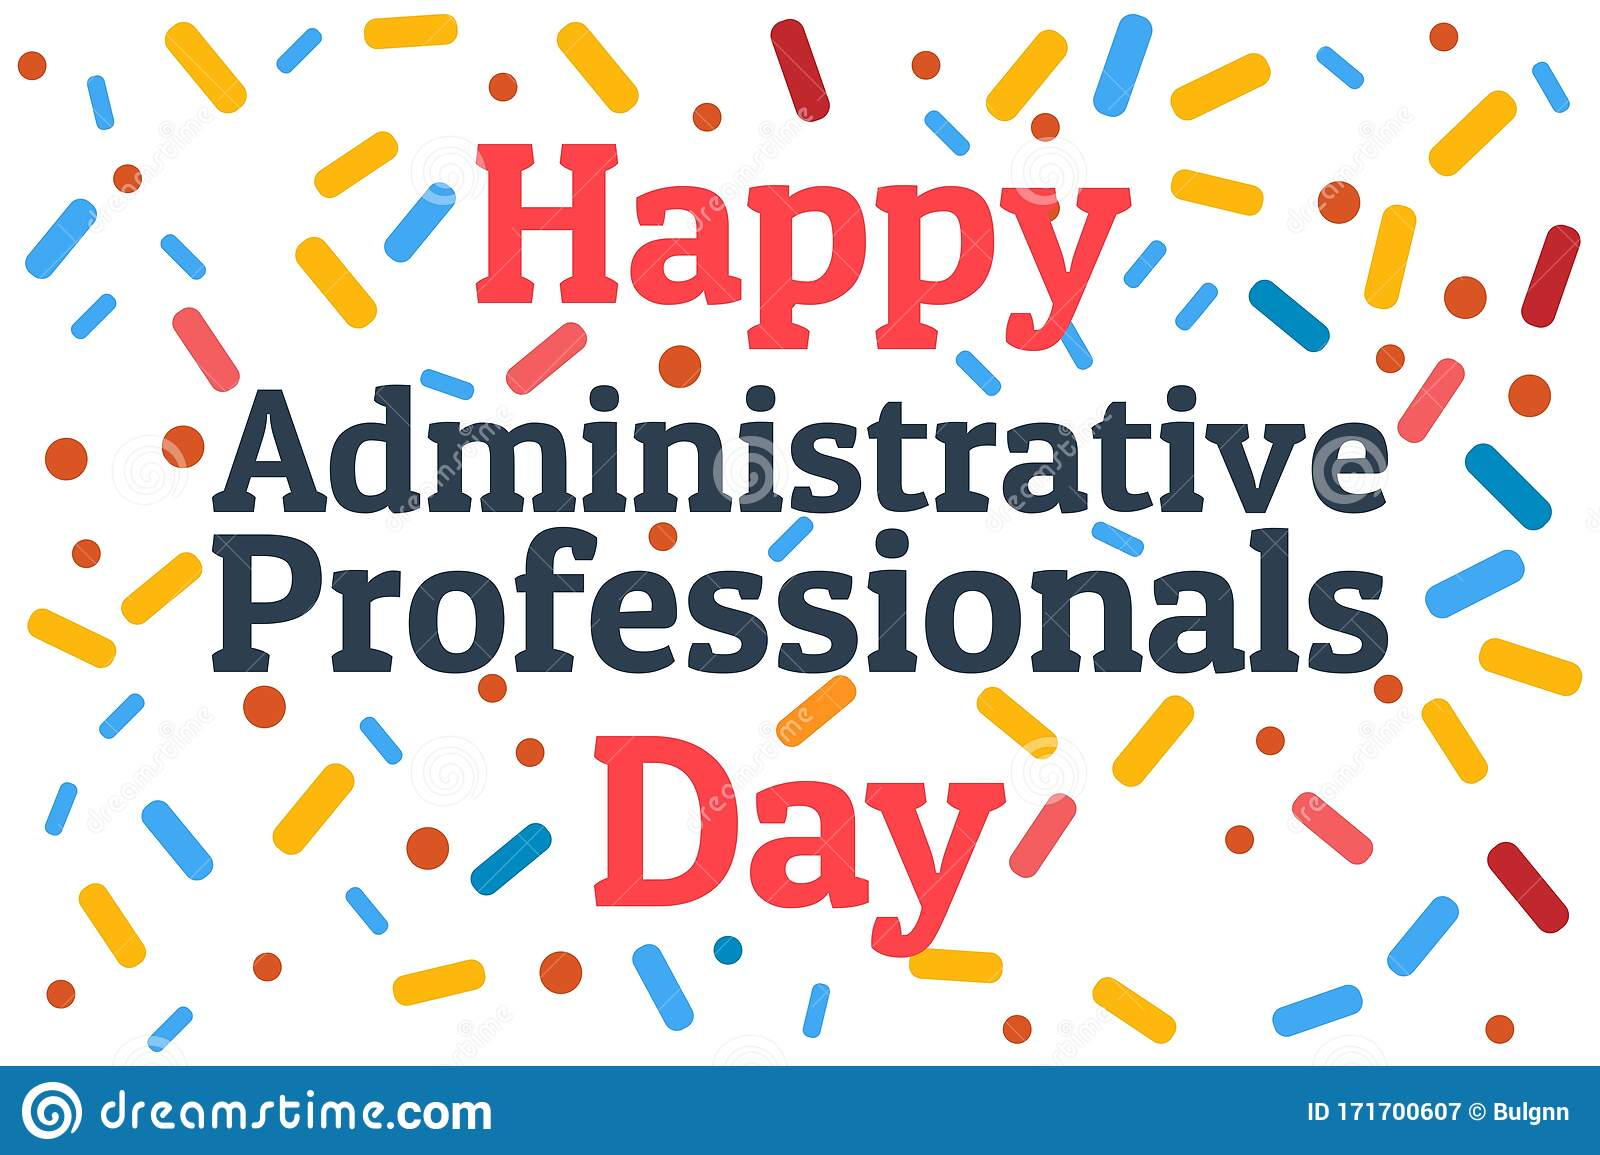 Administrative Professionals Day Secretaries Day Or Admin Day Holiday Concept Template For Background Banner Card Stock Vector Illustration Of Clerk Admin 171700607